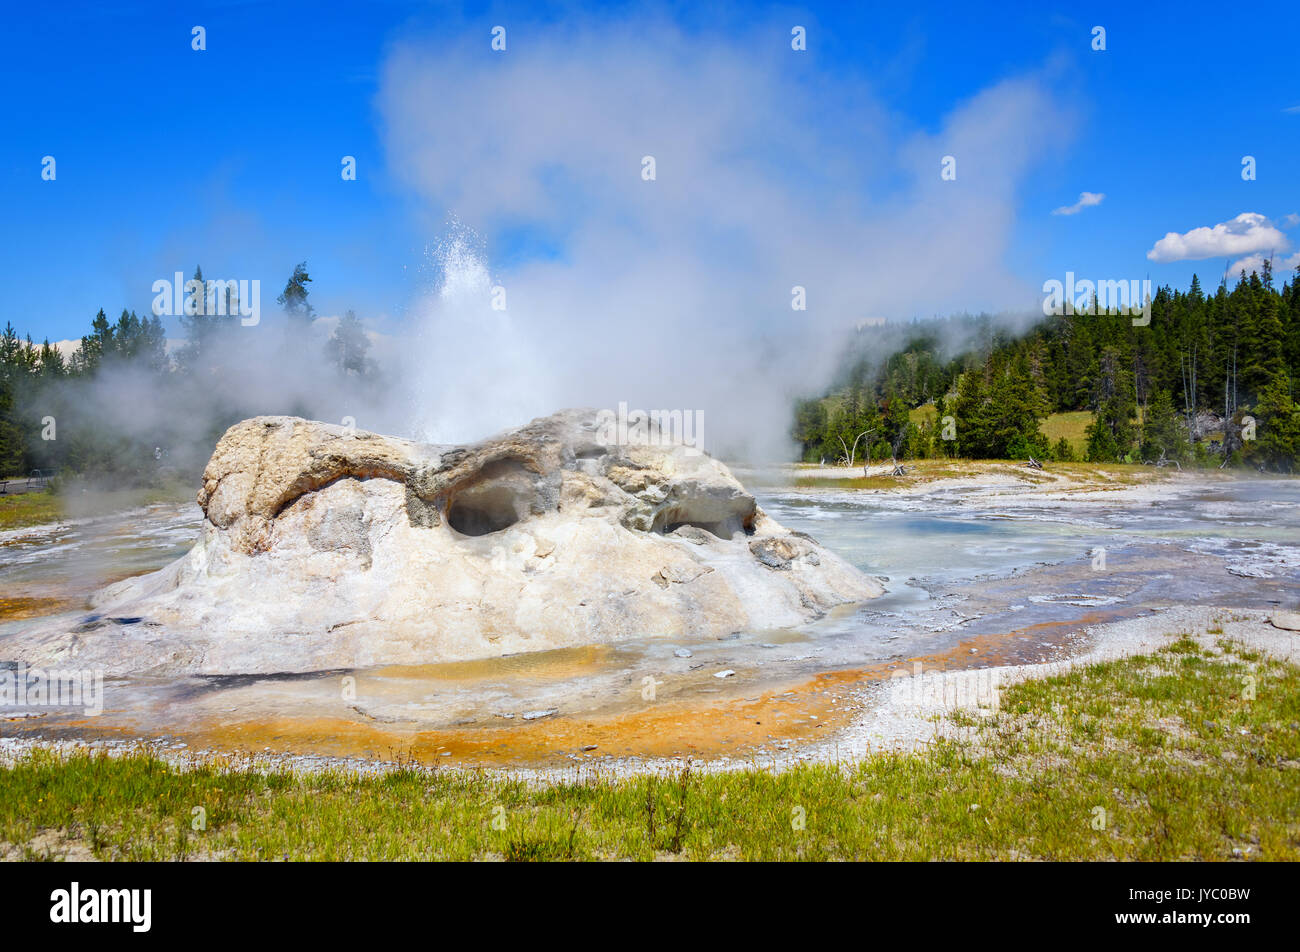 Steam and erupting waters of Grotto Geyser in Upper Geyser Basin. Yellowstone National Park - Stock Image